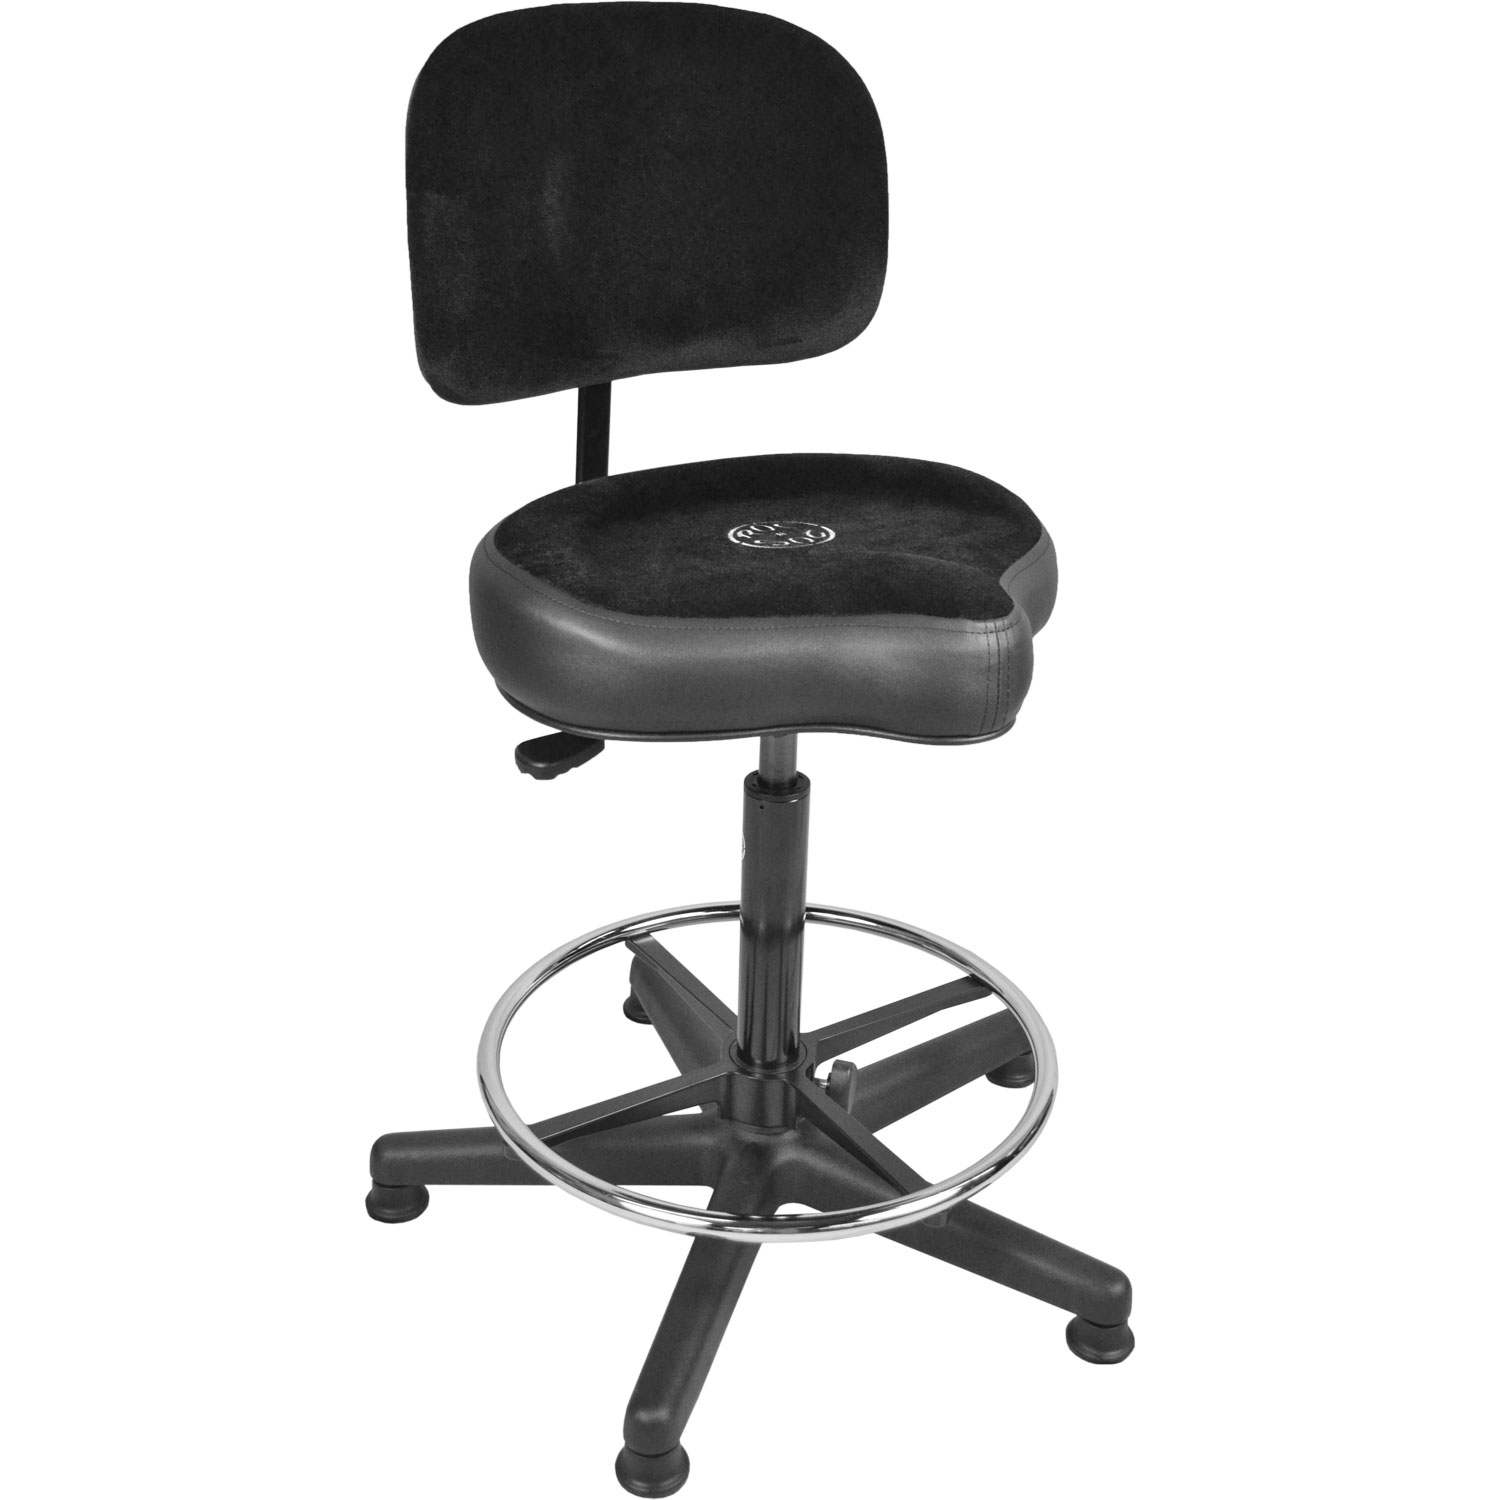 Roc-n-Soc Lunar Extended Gas Lift Timpani/Drum Throne with Foot Ring, Original Seat, & Back Rest in Black